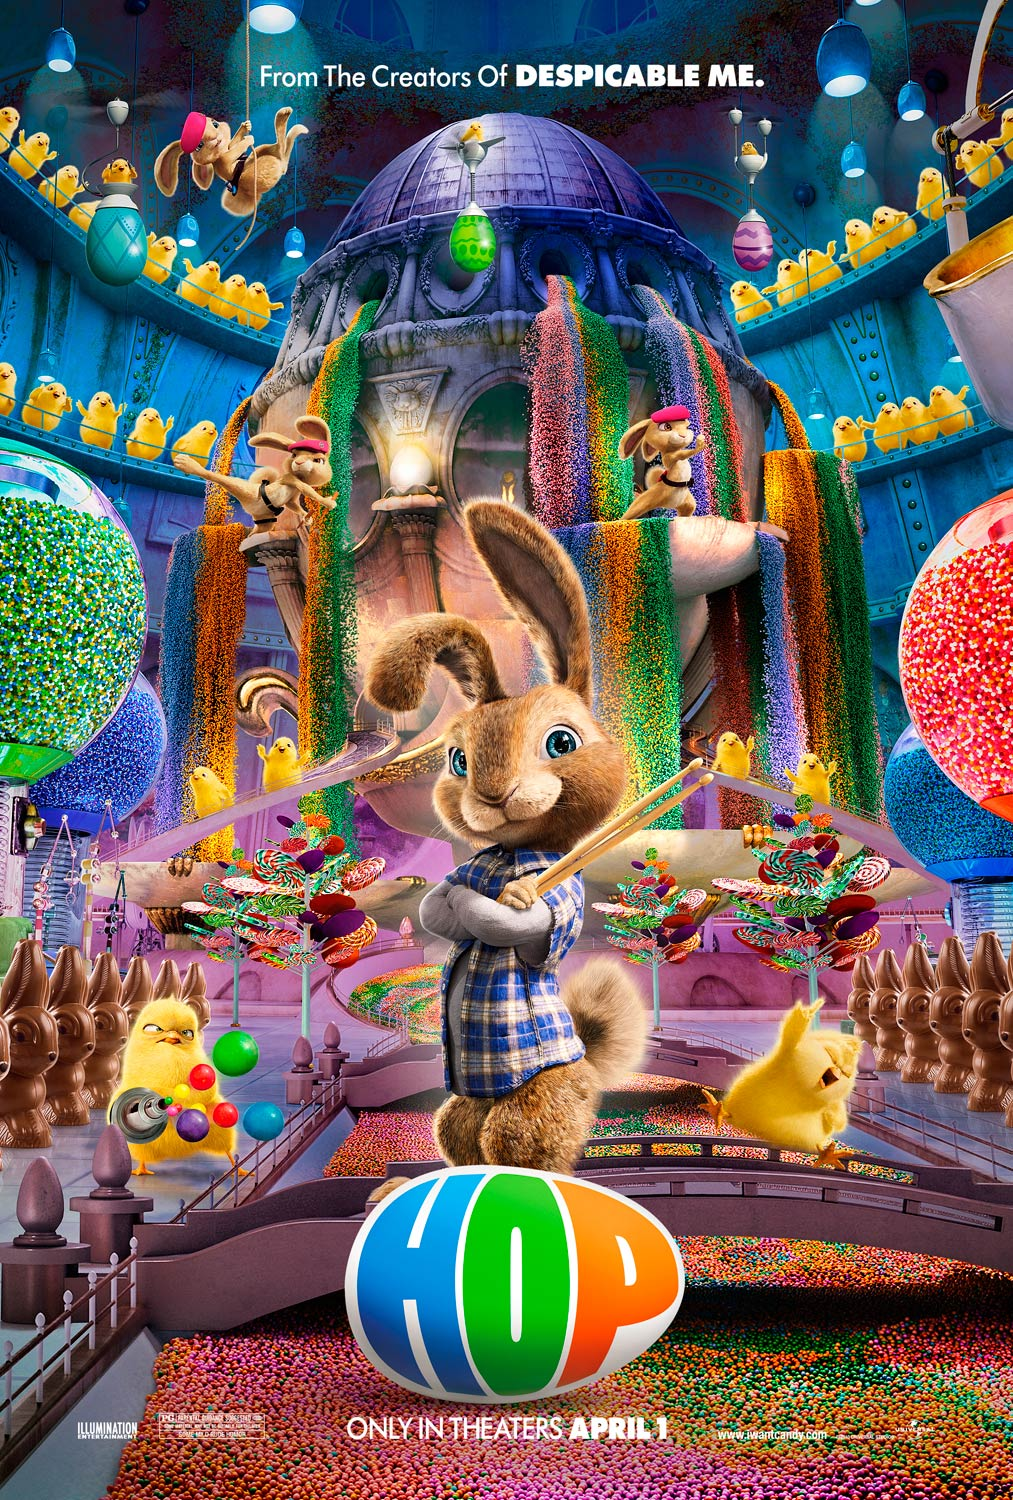 Hop movie wallpaper